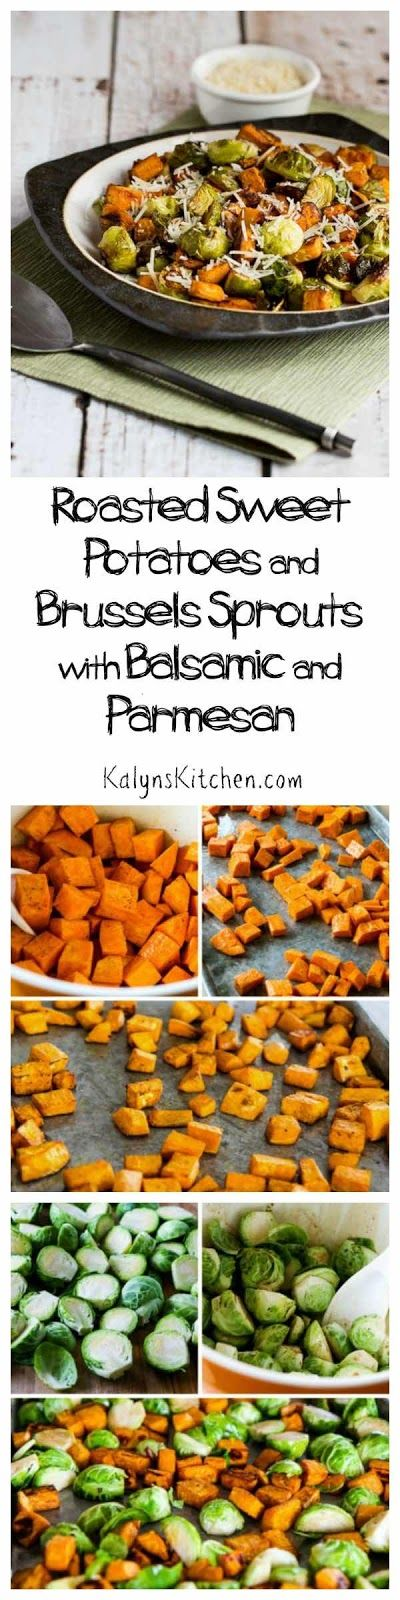 I love the combination of flavors in these Roasted Sweet Potatoes and Brussels Sprouts with Balsamic and Parmesan. We enjoyed this with Parmesan, but it would also be good with Feta, and this is perfect for a special meal or just a week-night dinner. [KalynsKitchen.com]